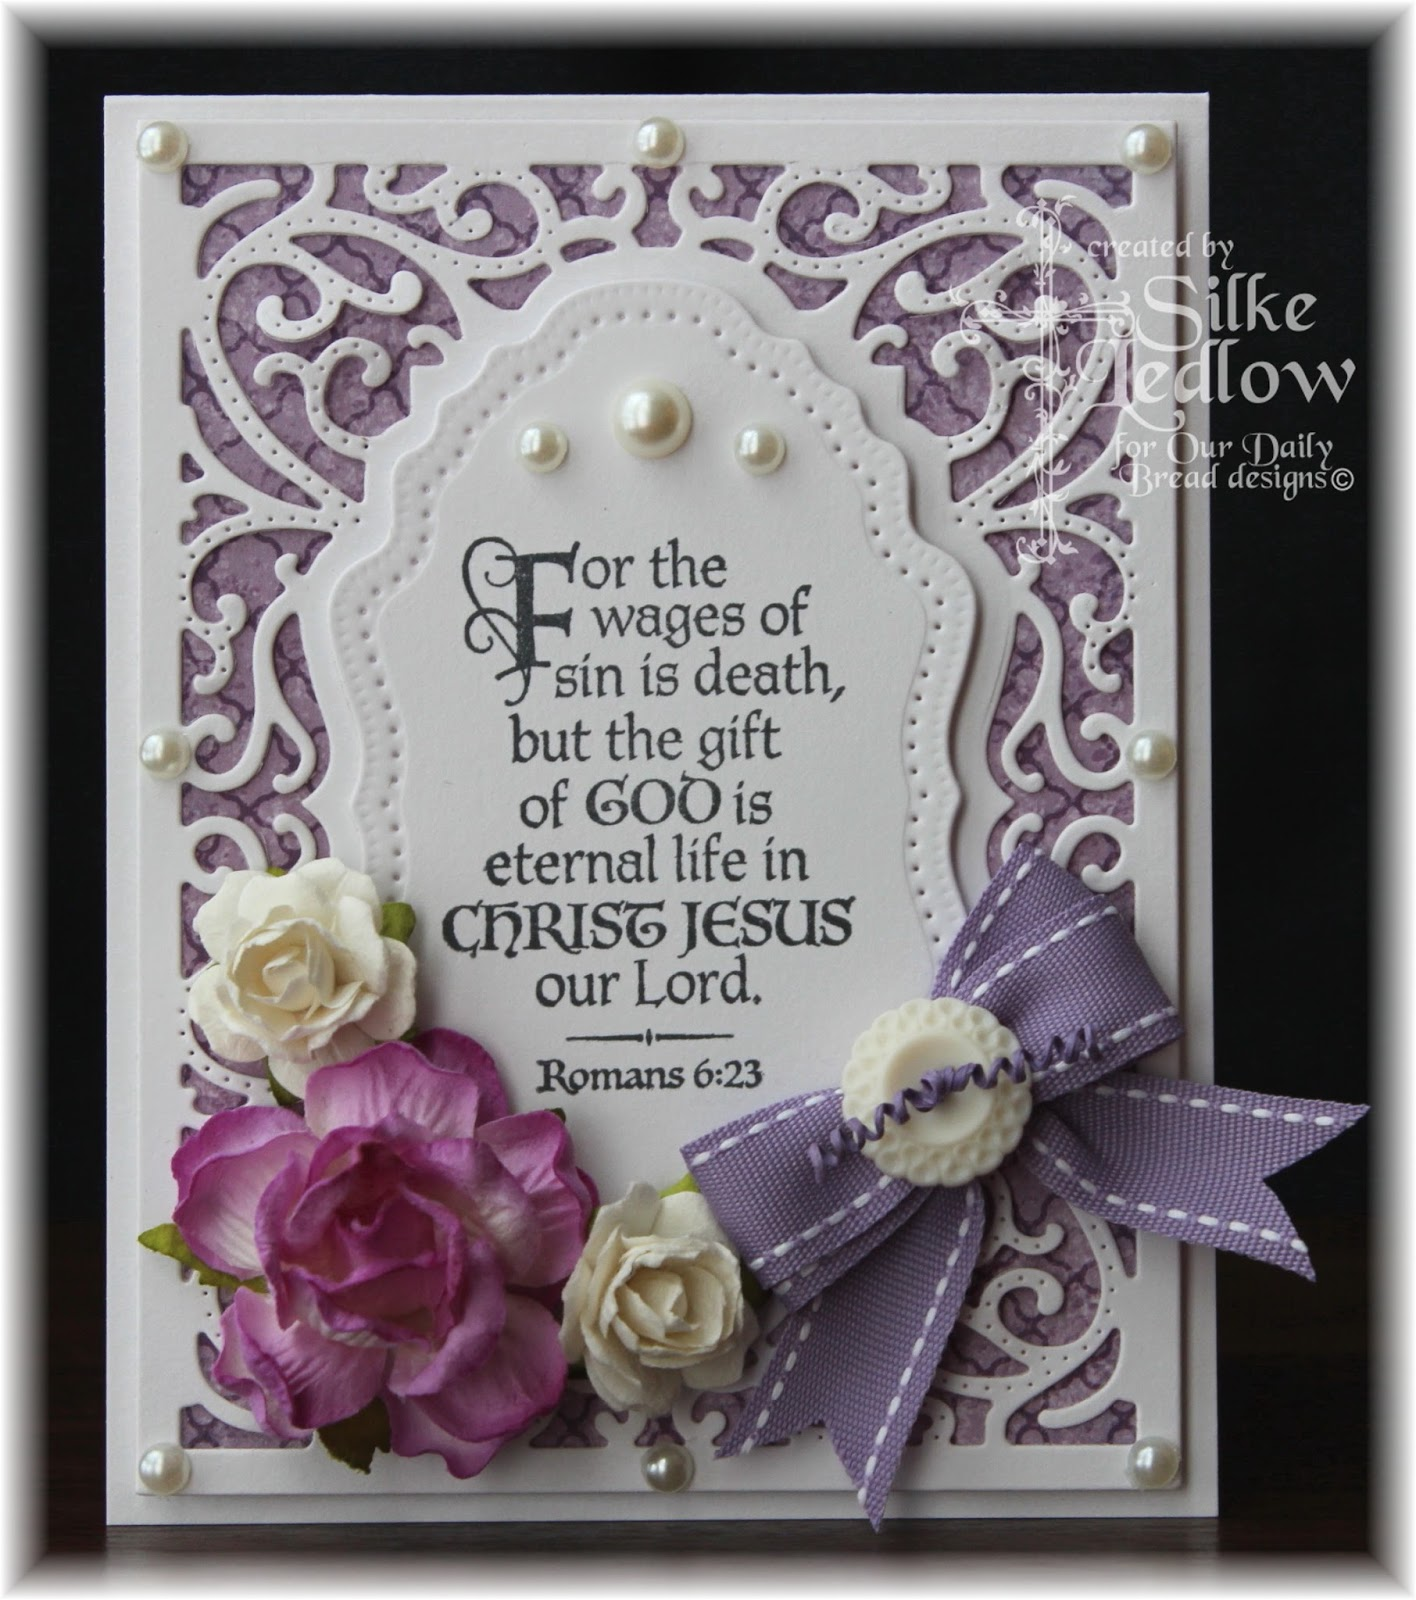 Stamps - Our Daily Bread Designs The Cross, Christian Faith Paper Collection, ODBD Custom Vintage Flourish Pattern Die